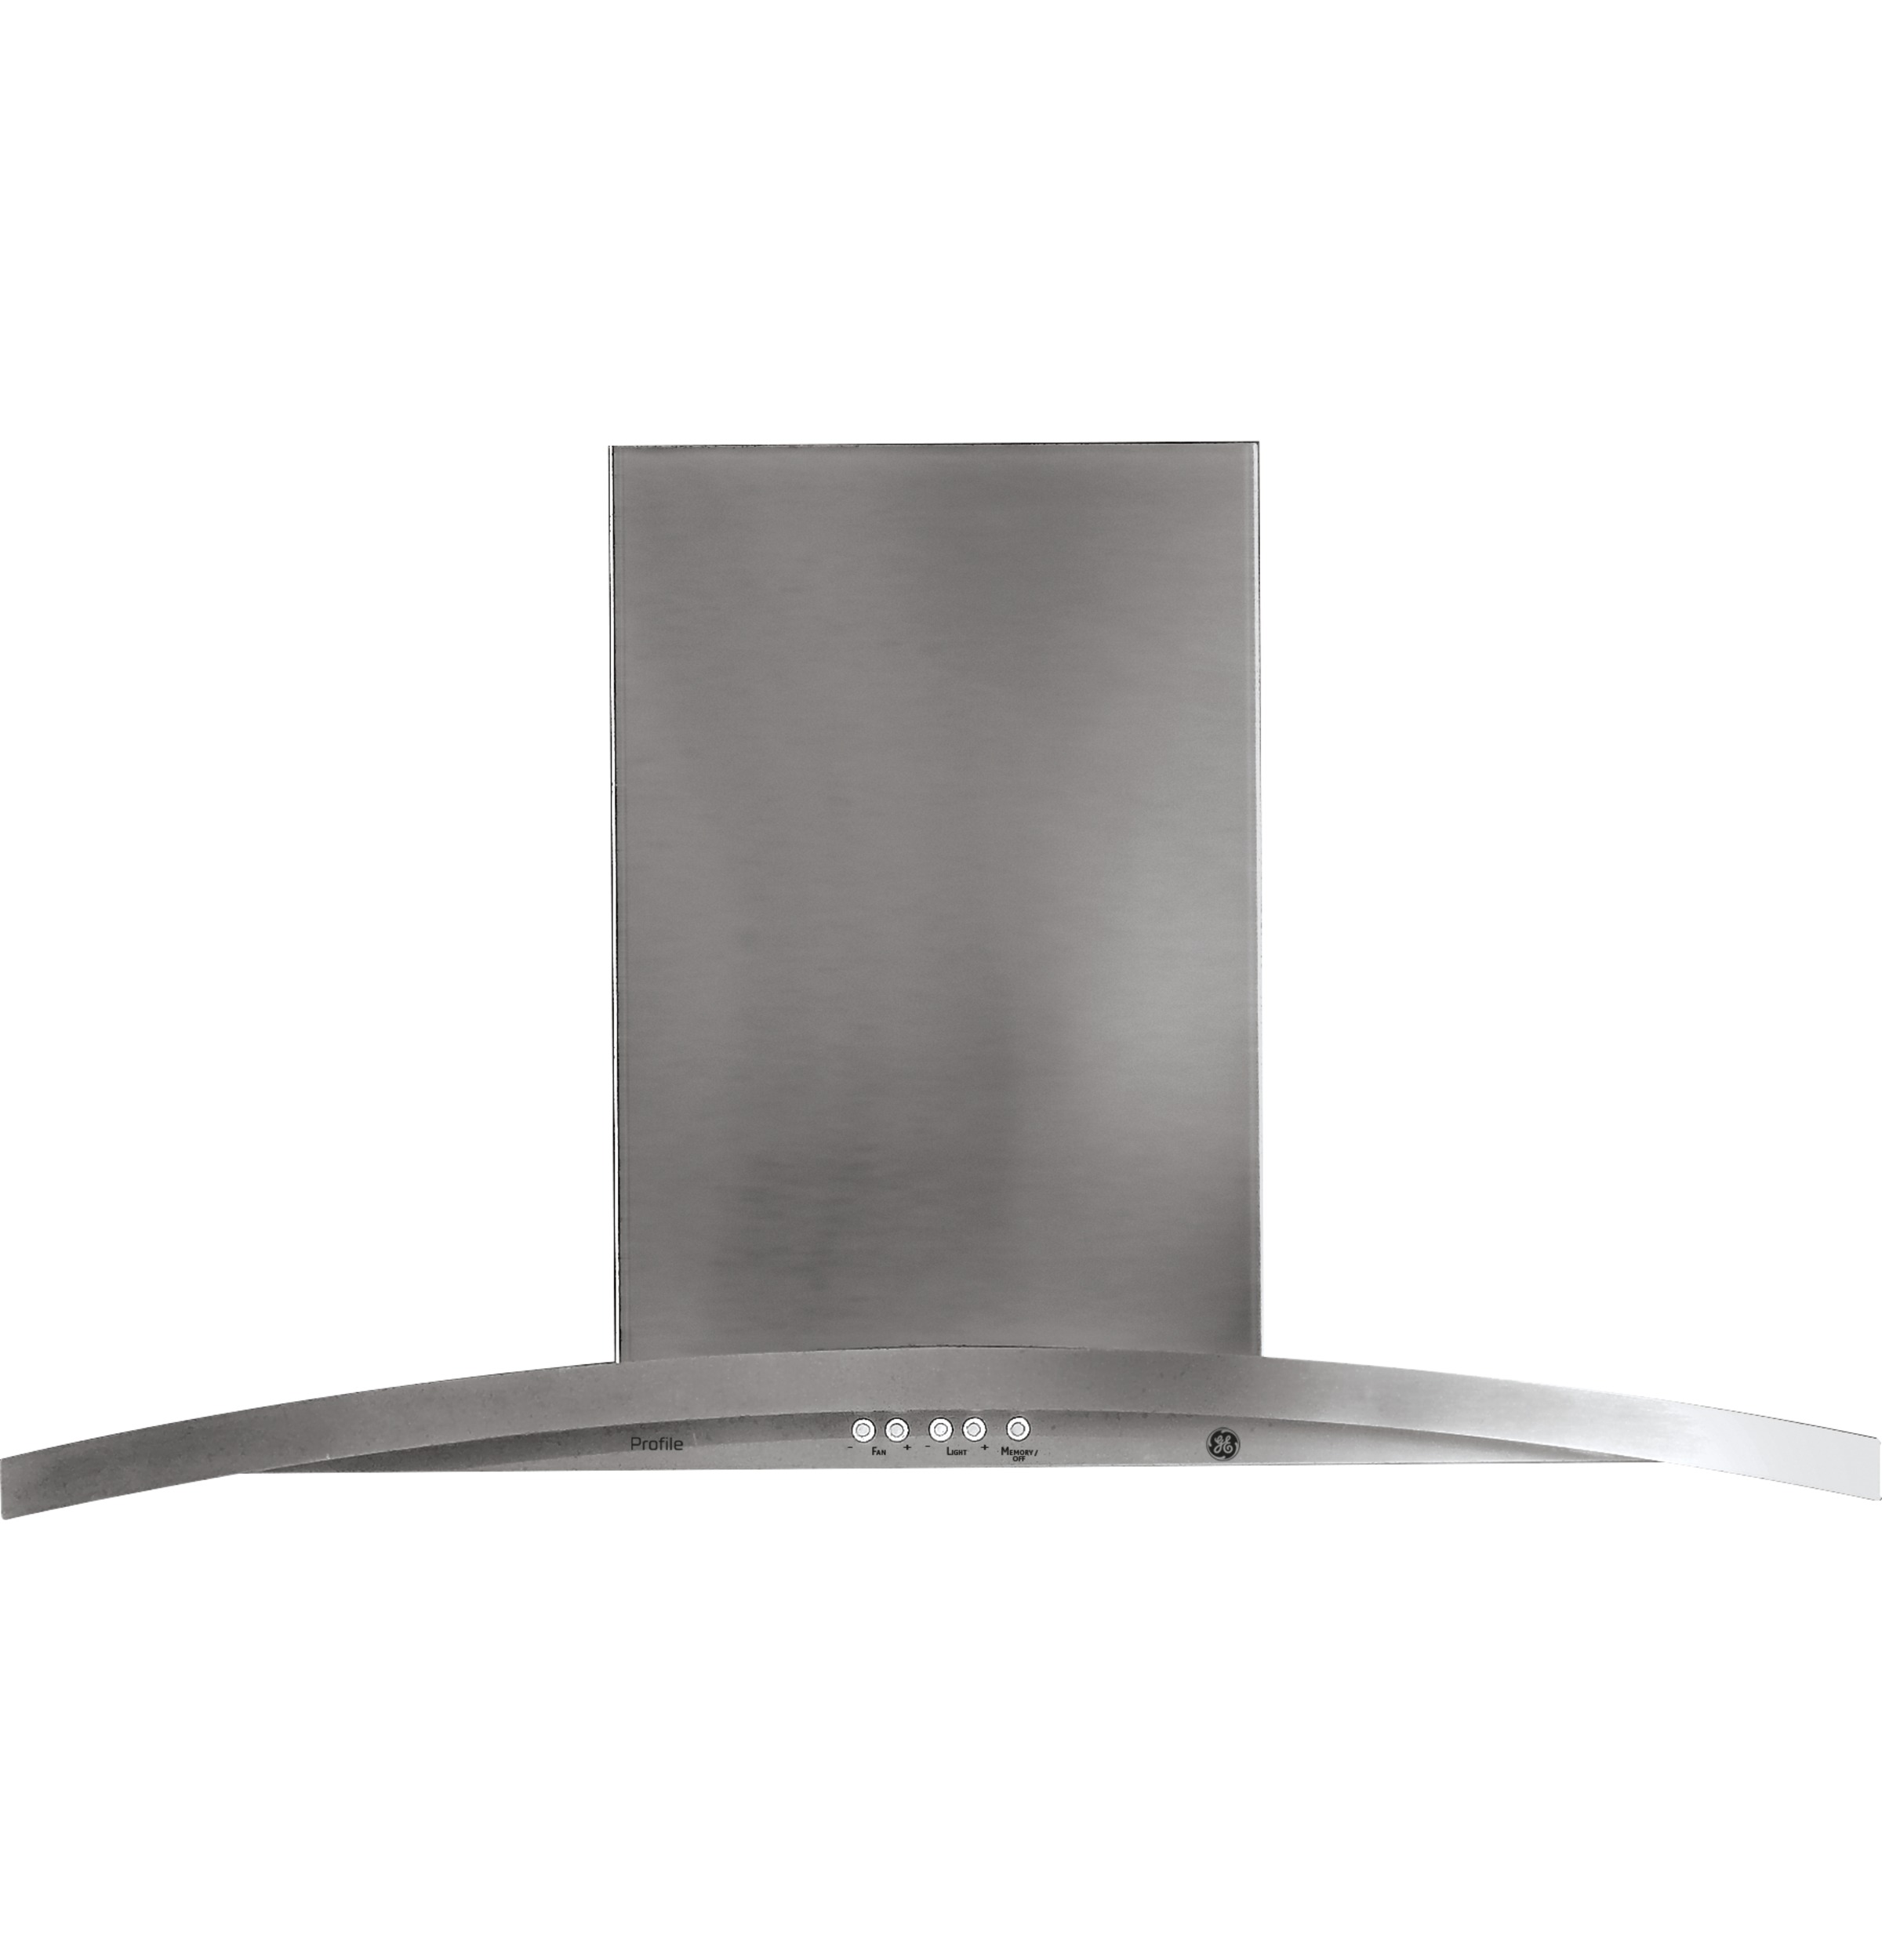 "GE Profile GE Profile™ Series 36"" Wall-Mount Hood"